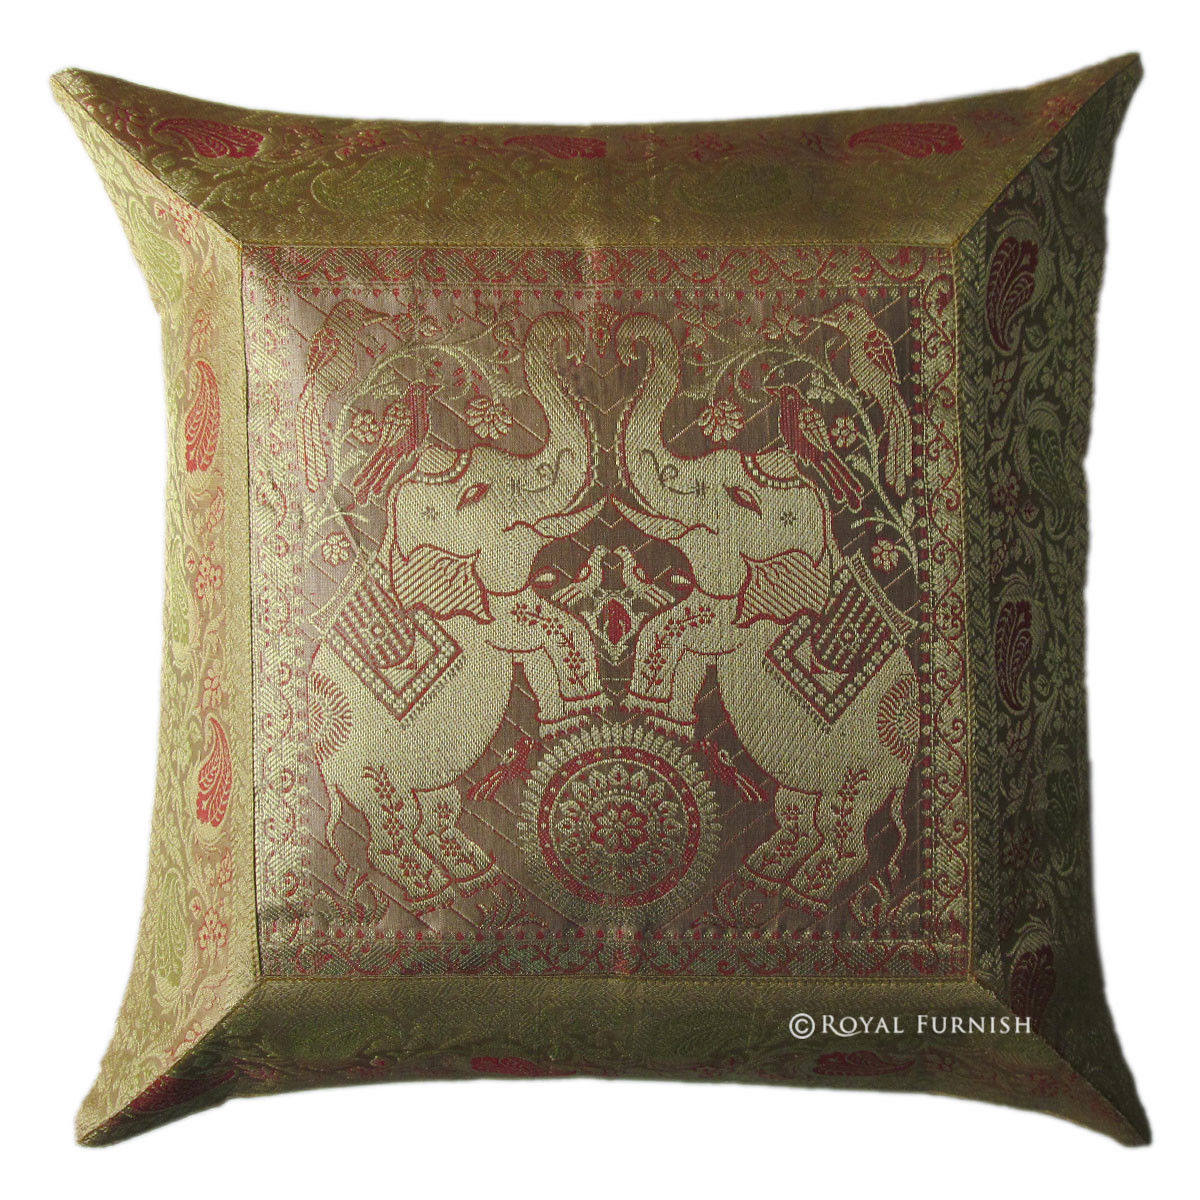 Gold Silk Brocade Elephant Decorative Accent Toss Pillow Sham - RoyalFurnish.com